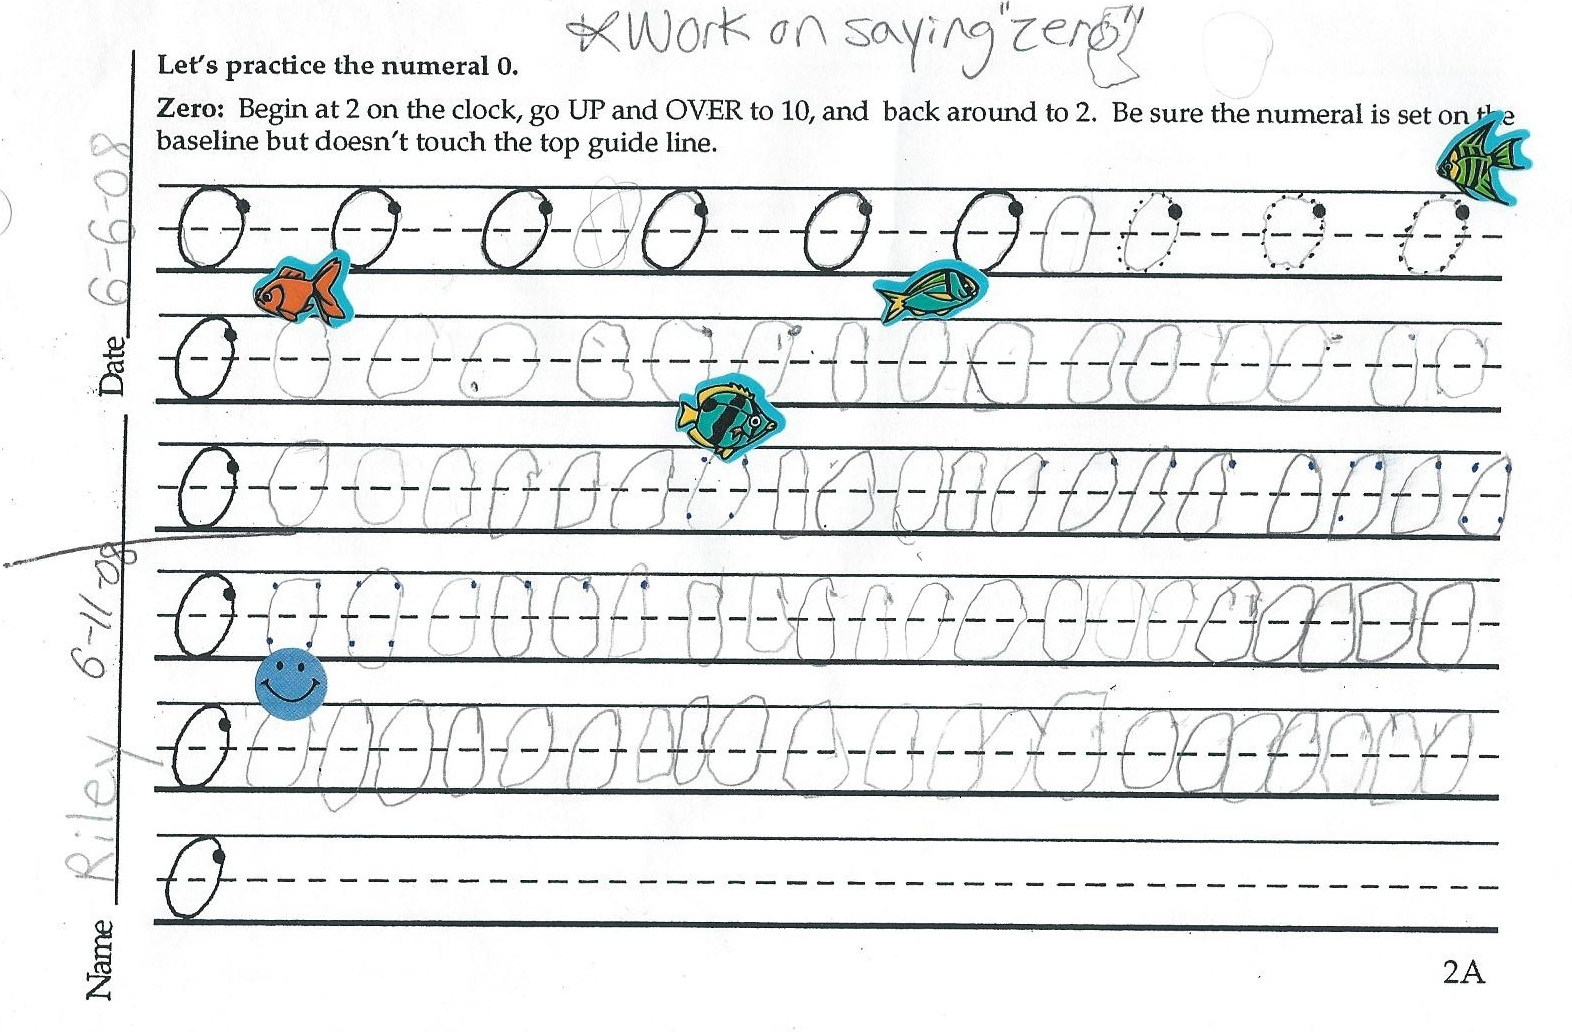 Worksheet School Work For Kids worksheet school work for kids mikyu free home support network cursive first 6 08 e1344822283915 of